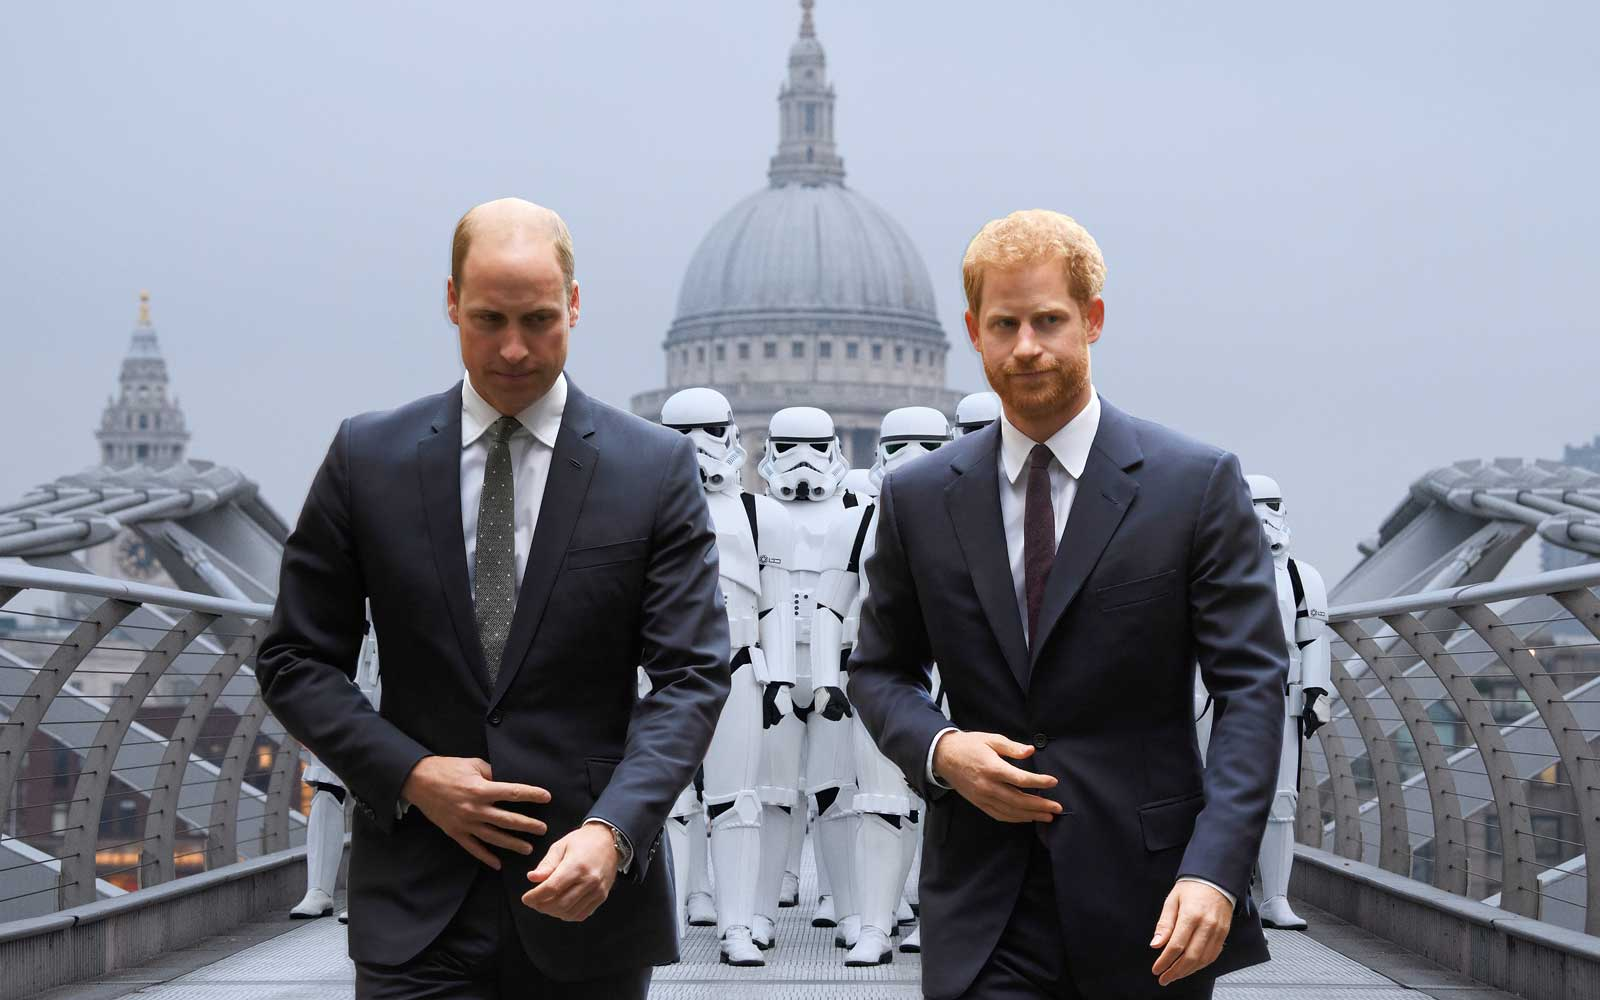 Prince William and Prince Harry Have a Cameo in 'Star Wars: The Last Jedi'